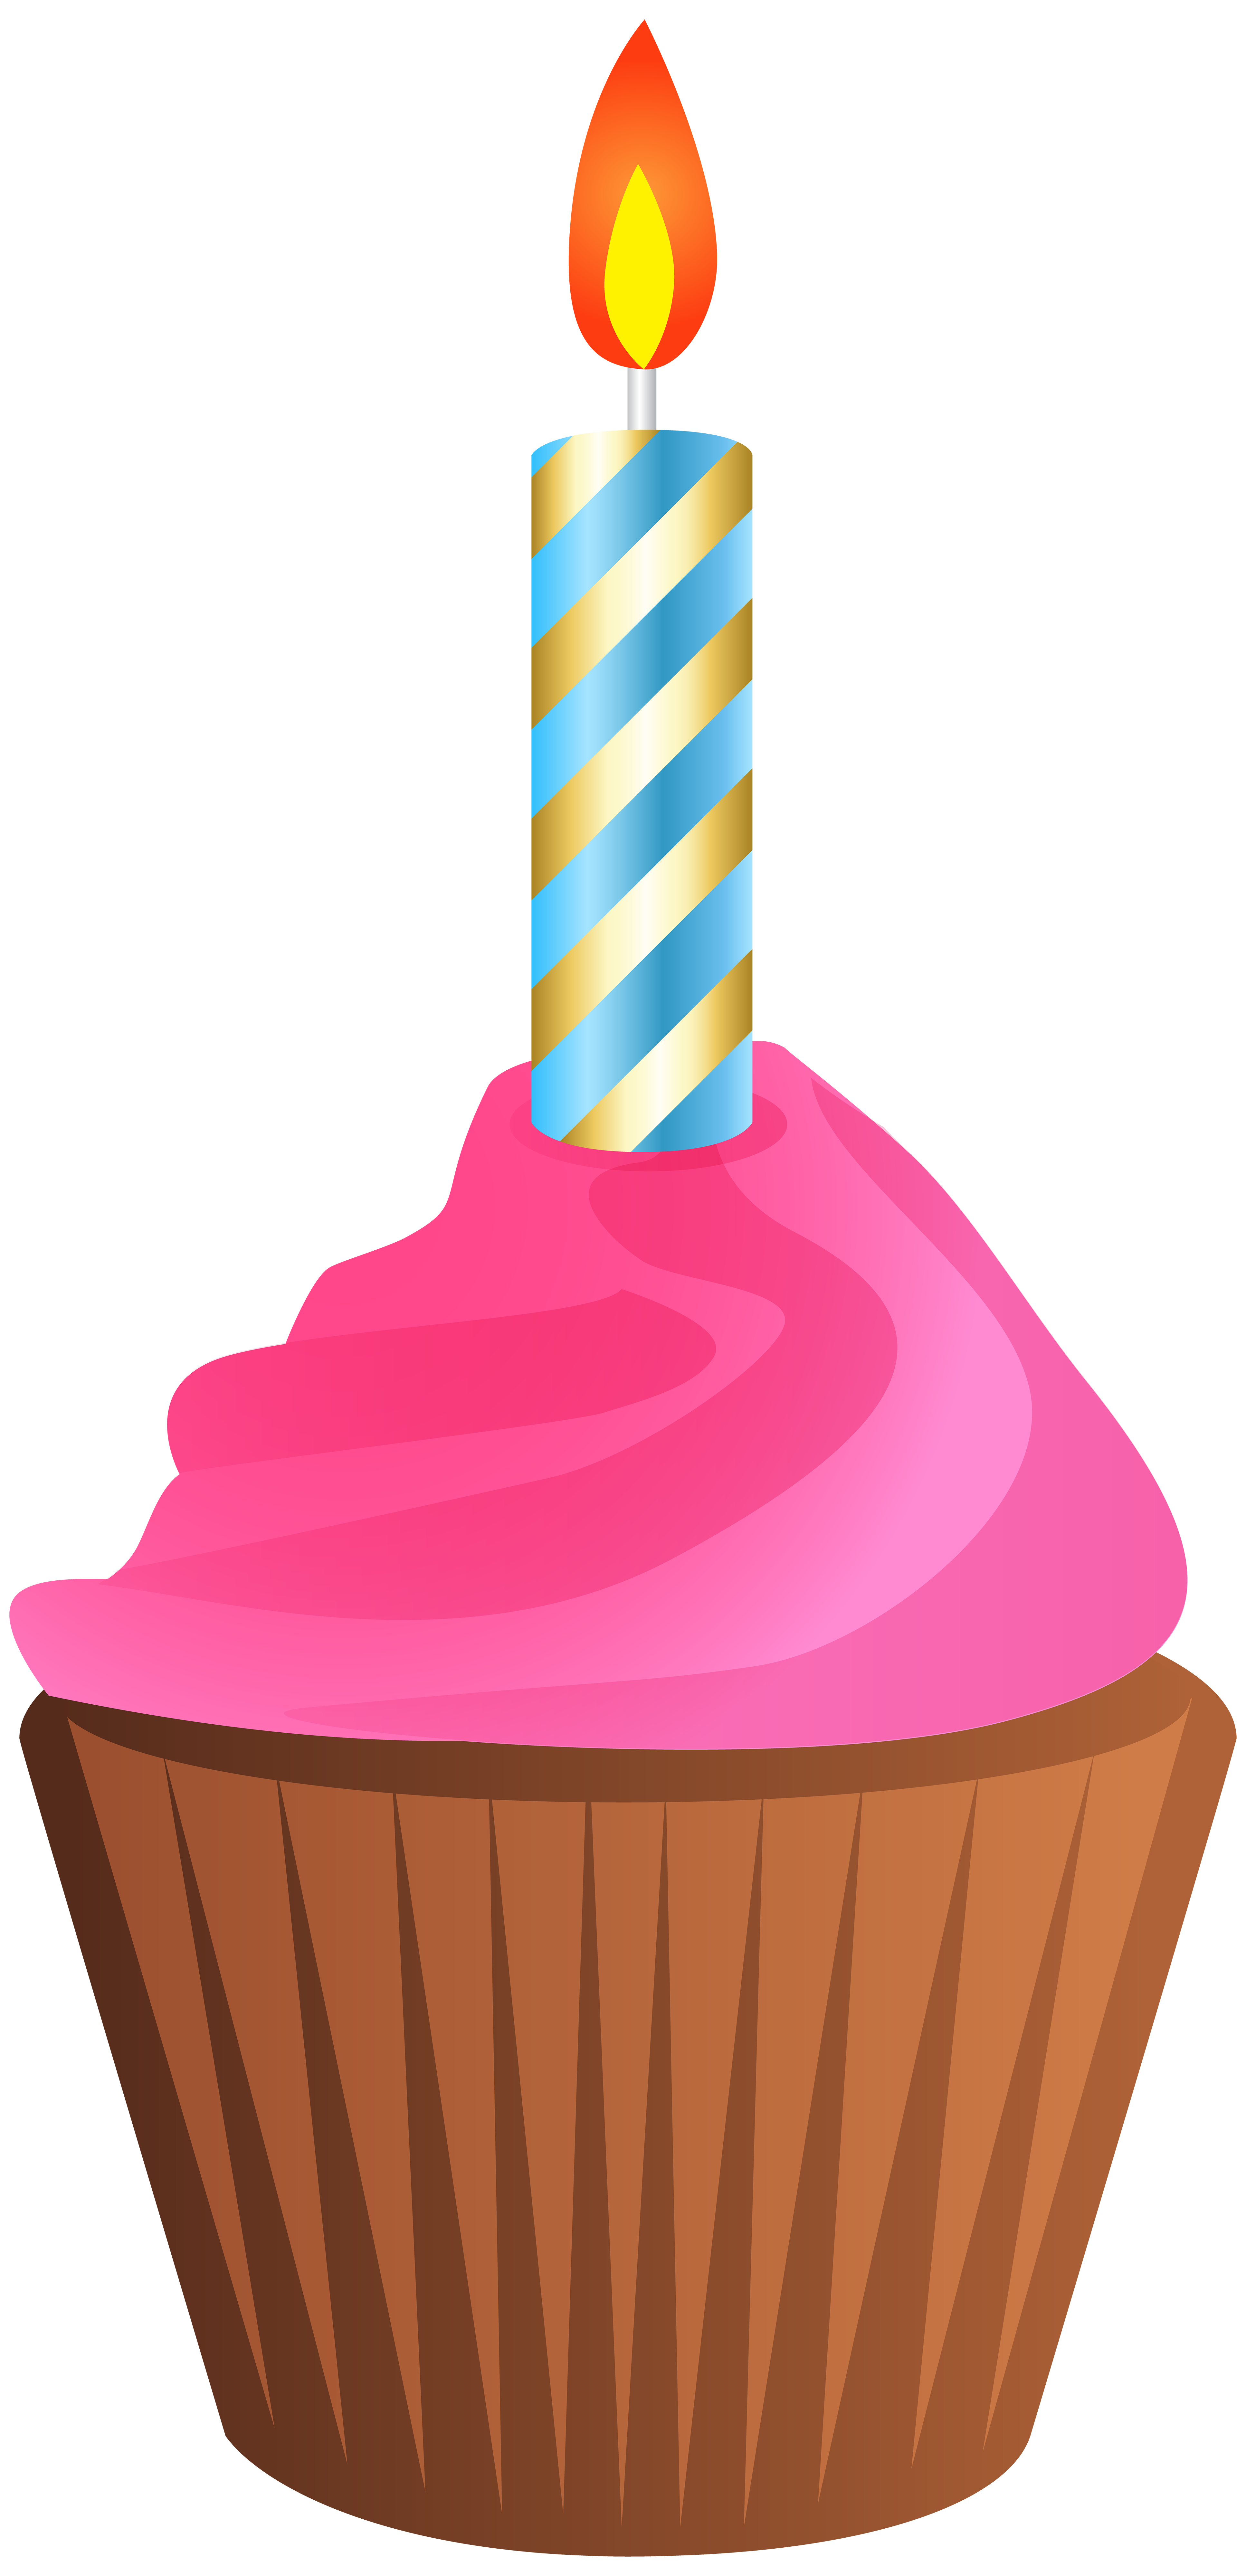 Muffin Birthday cake Cupcake Clip art.